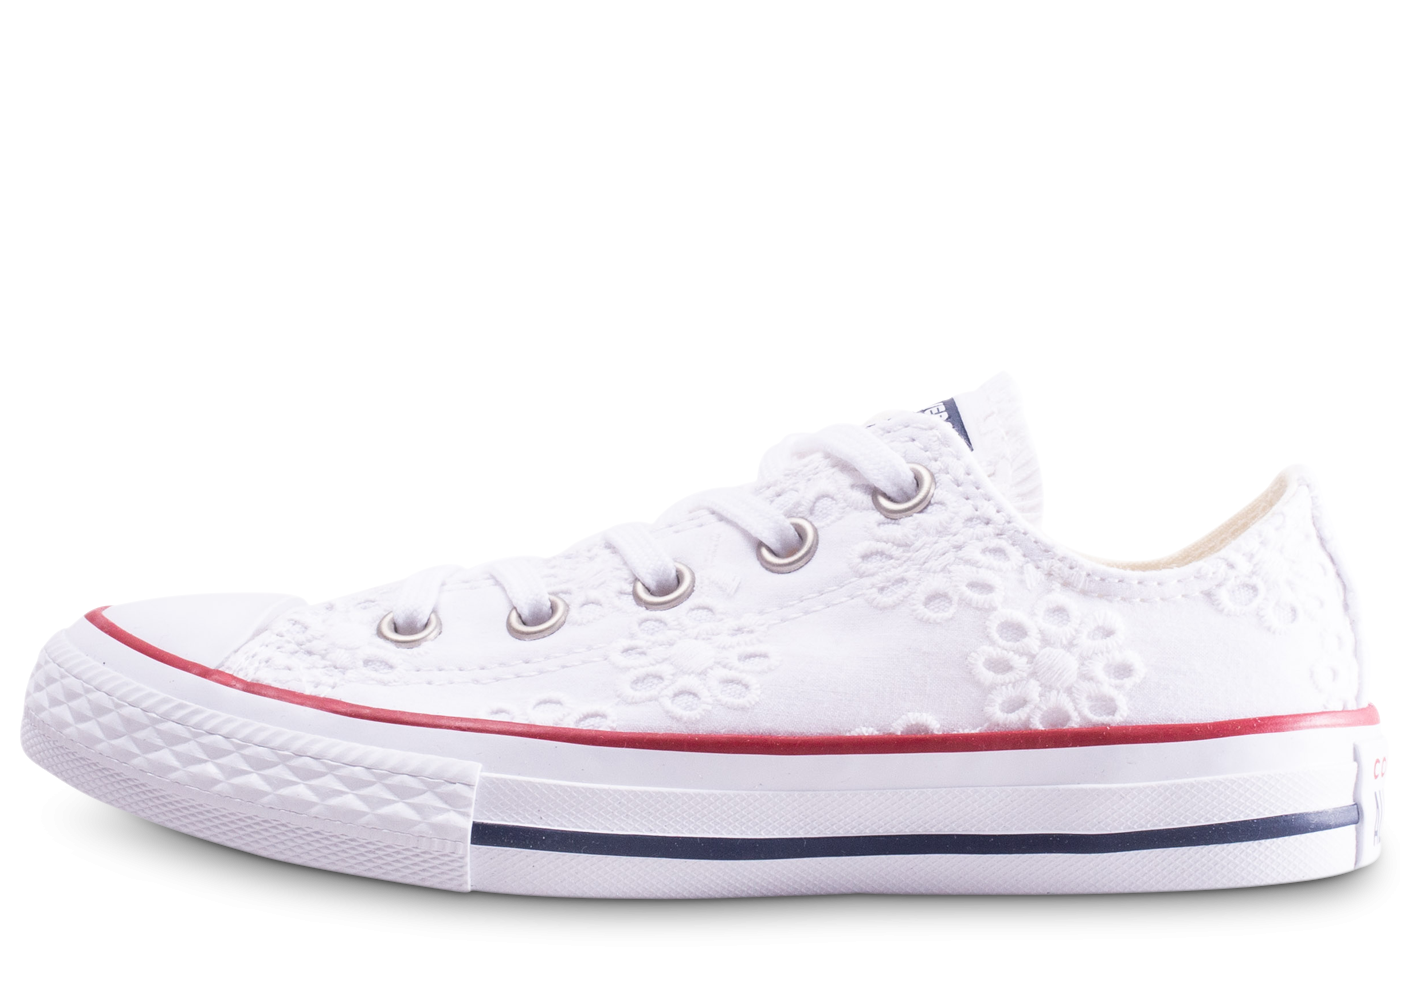 converse all star femme basse blanche